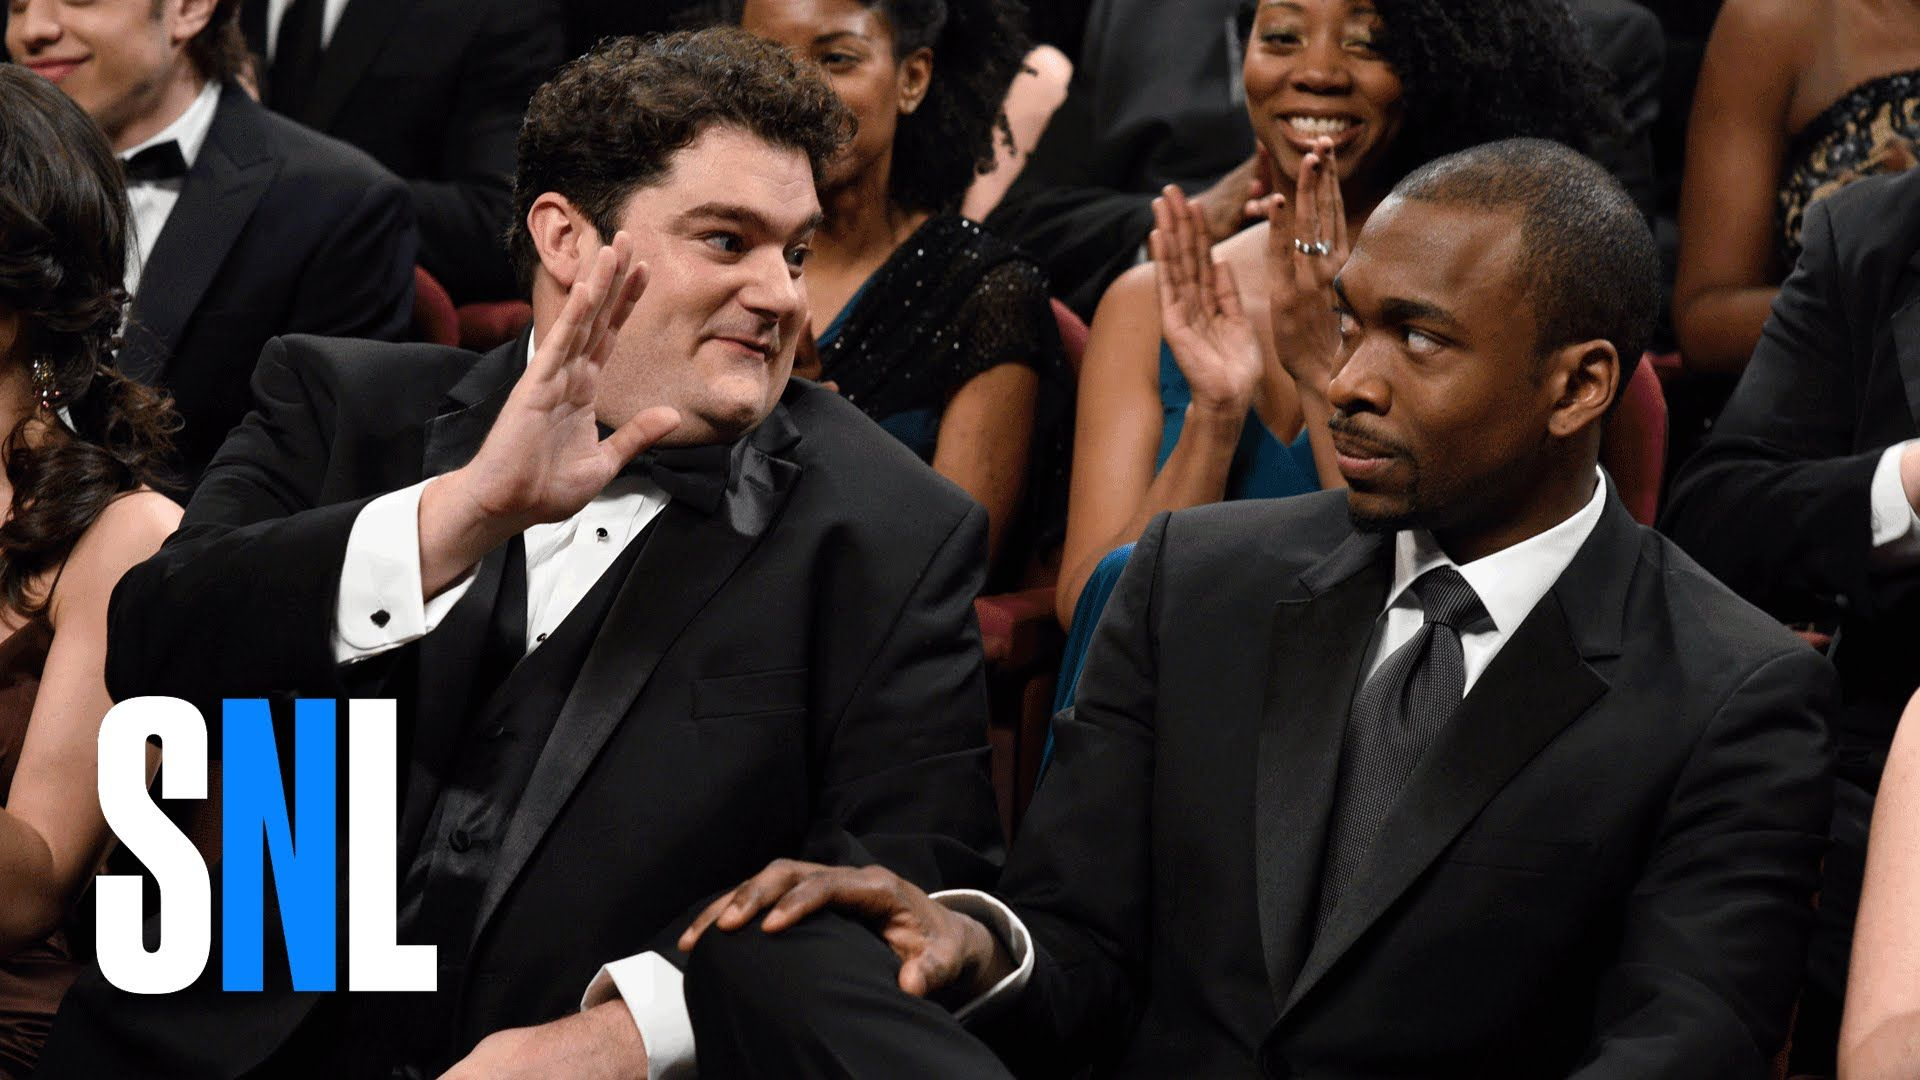 Screen Guild Awards Snl This Funny Sketch Discusses How People